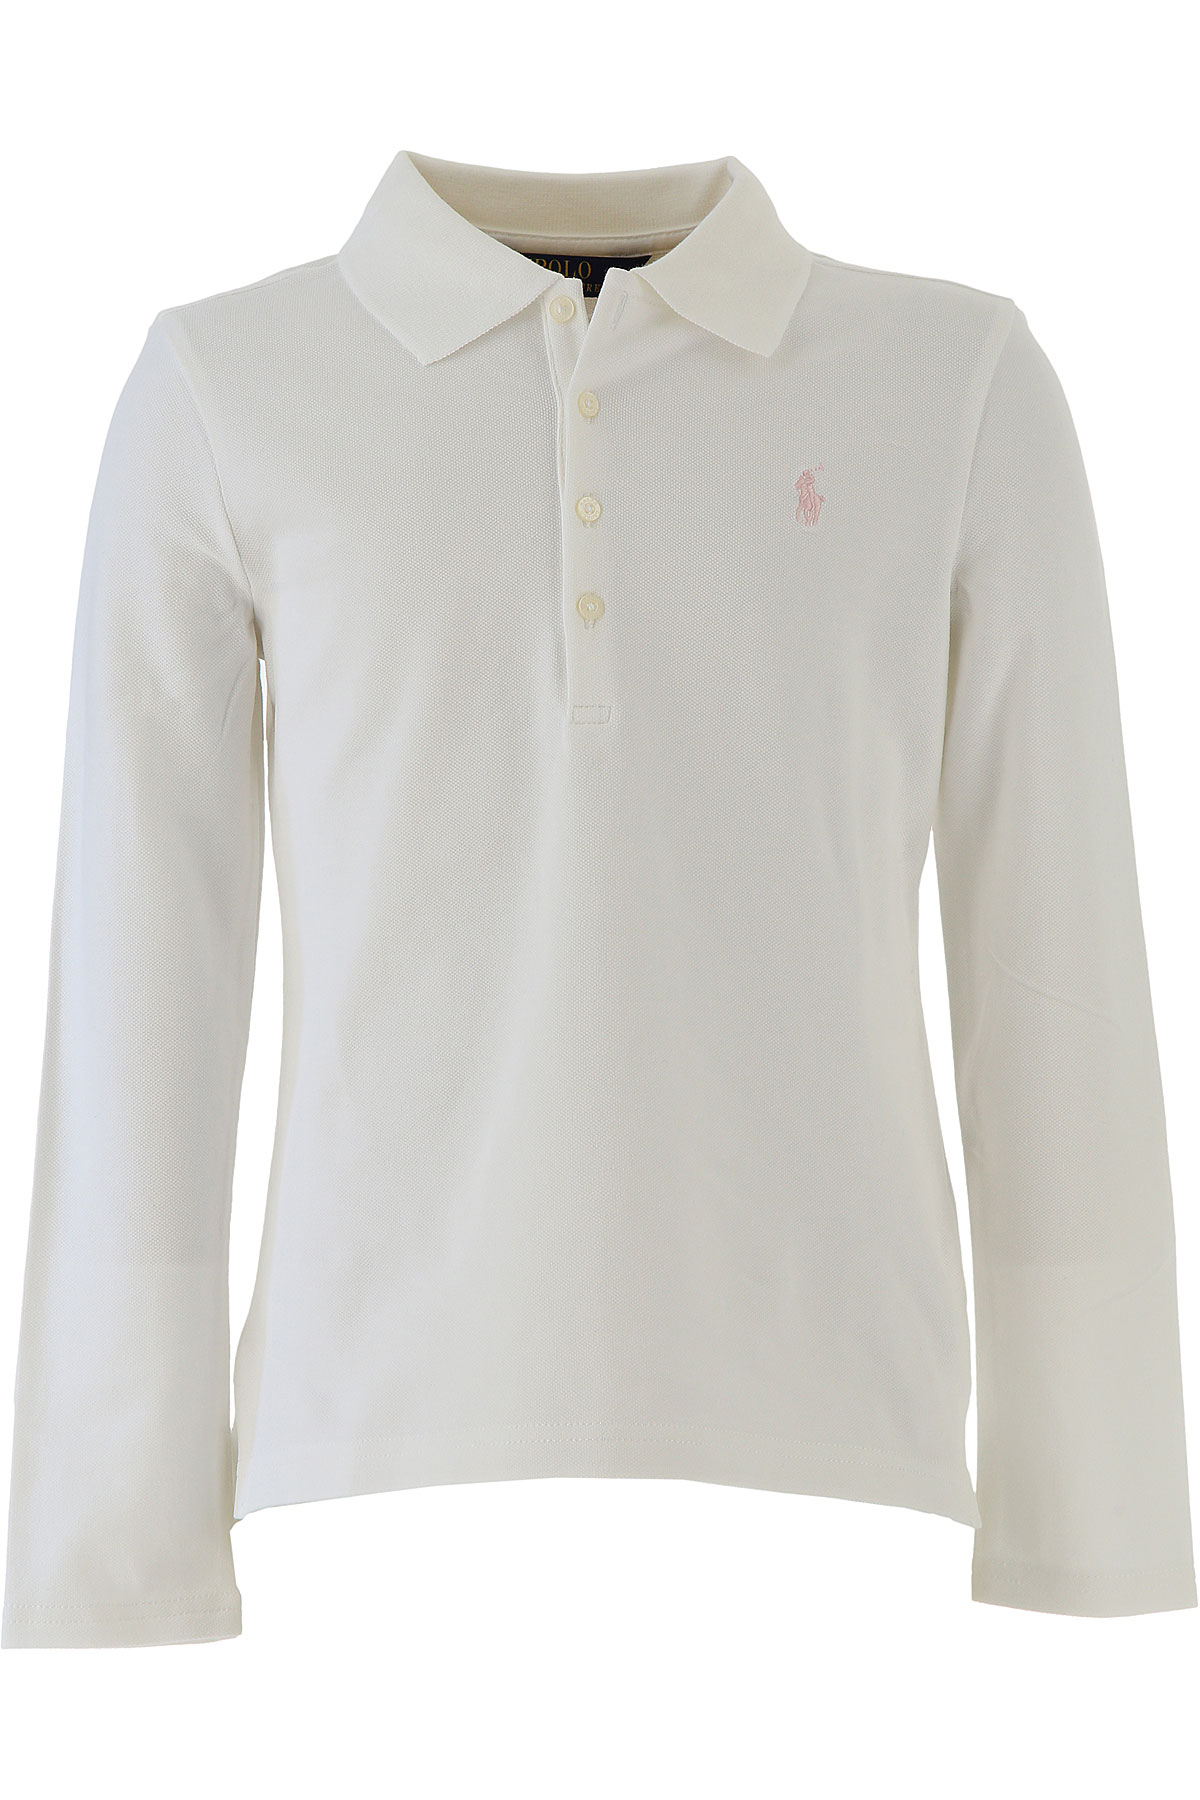 Image of Ralph Lauren Kids Polo Shirt for Girls, White, Cotton, 2017, 3Y 4Y 5Y 6Y